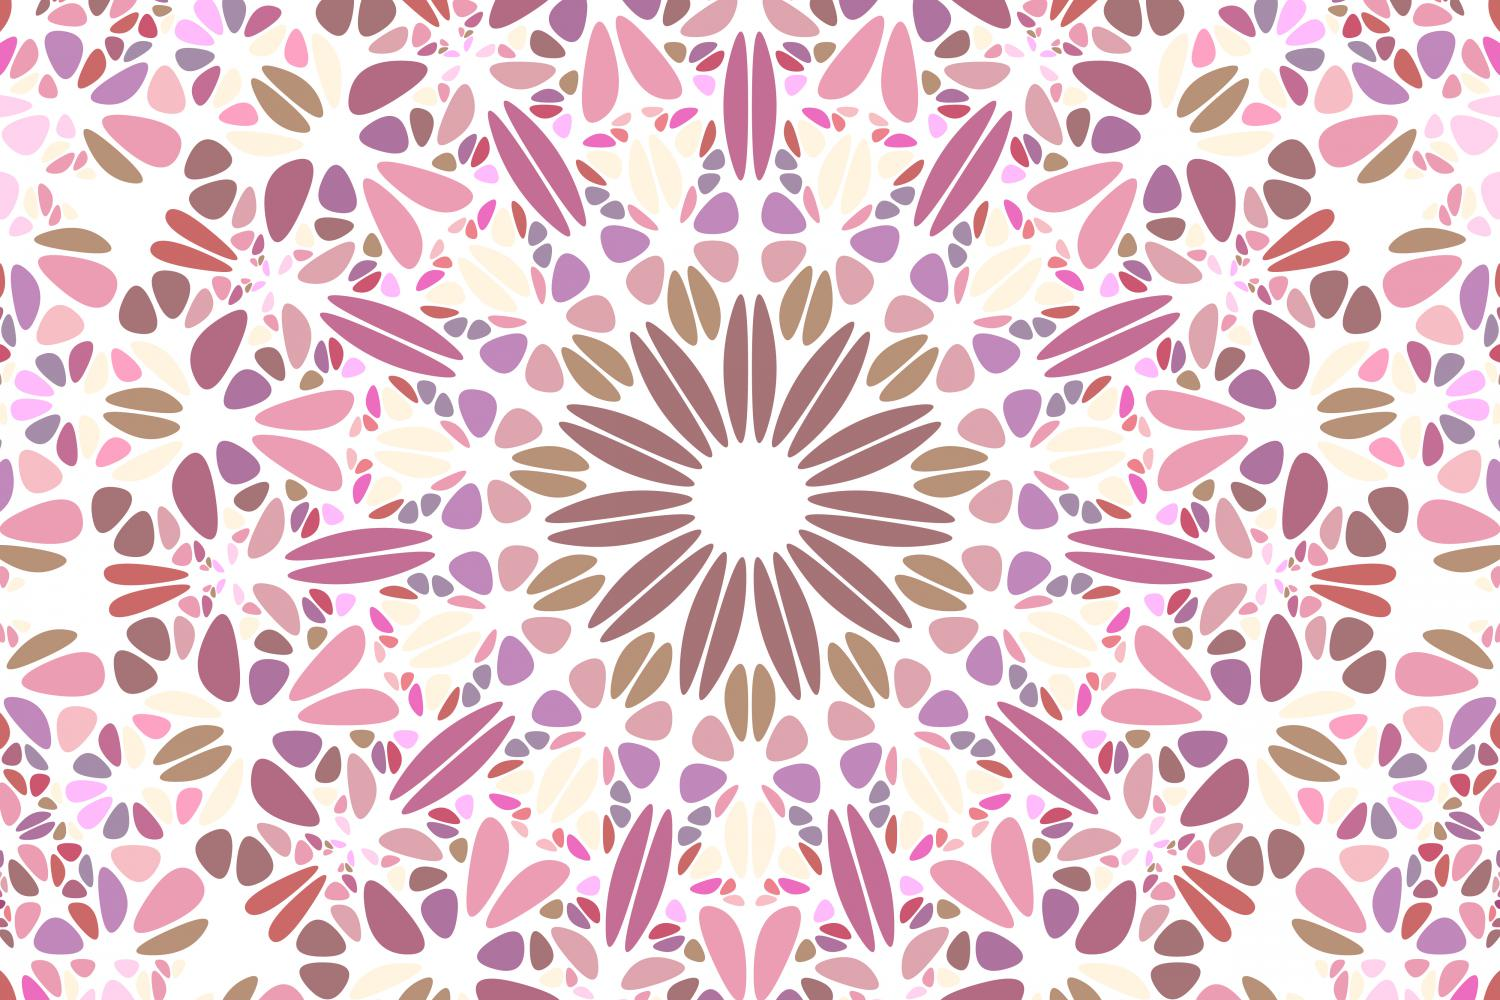 48 Floral Mandala Backgrounds example image 6